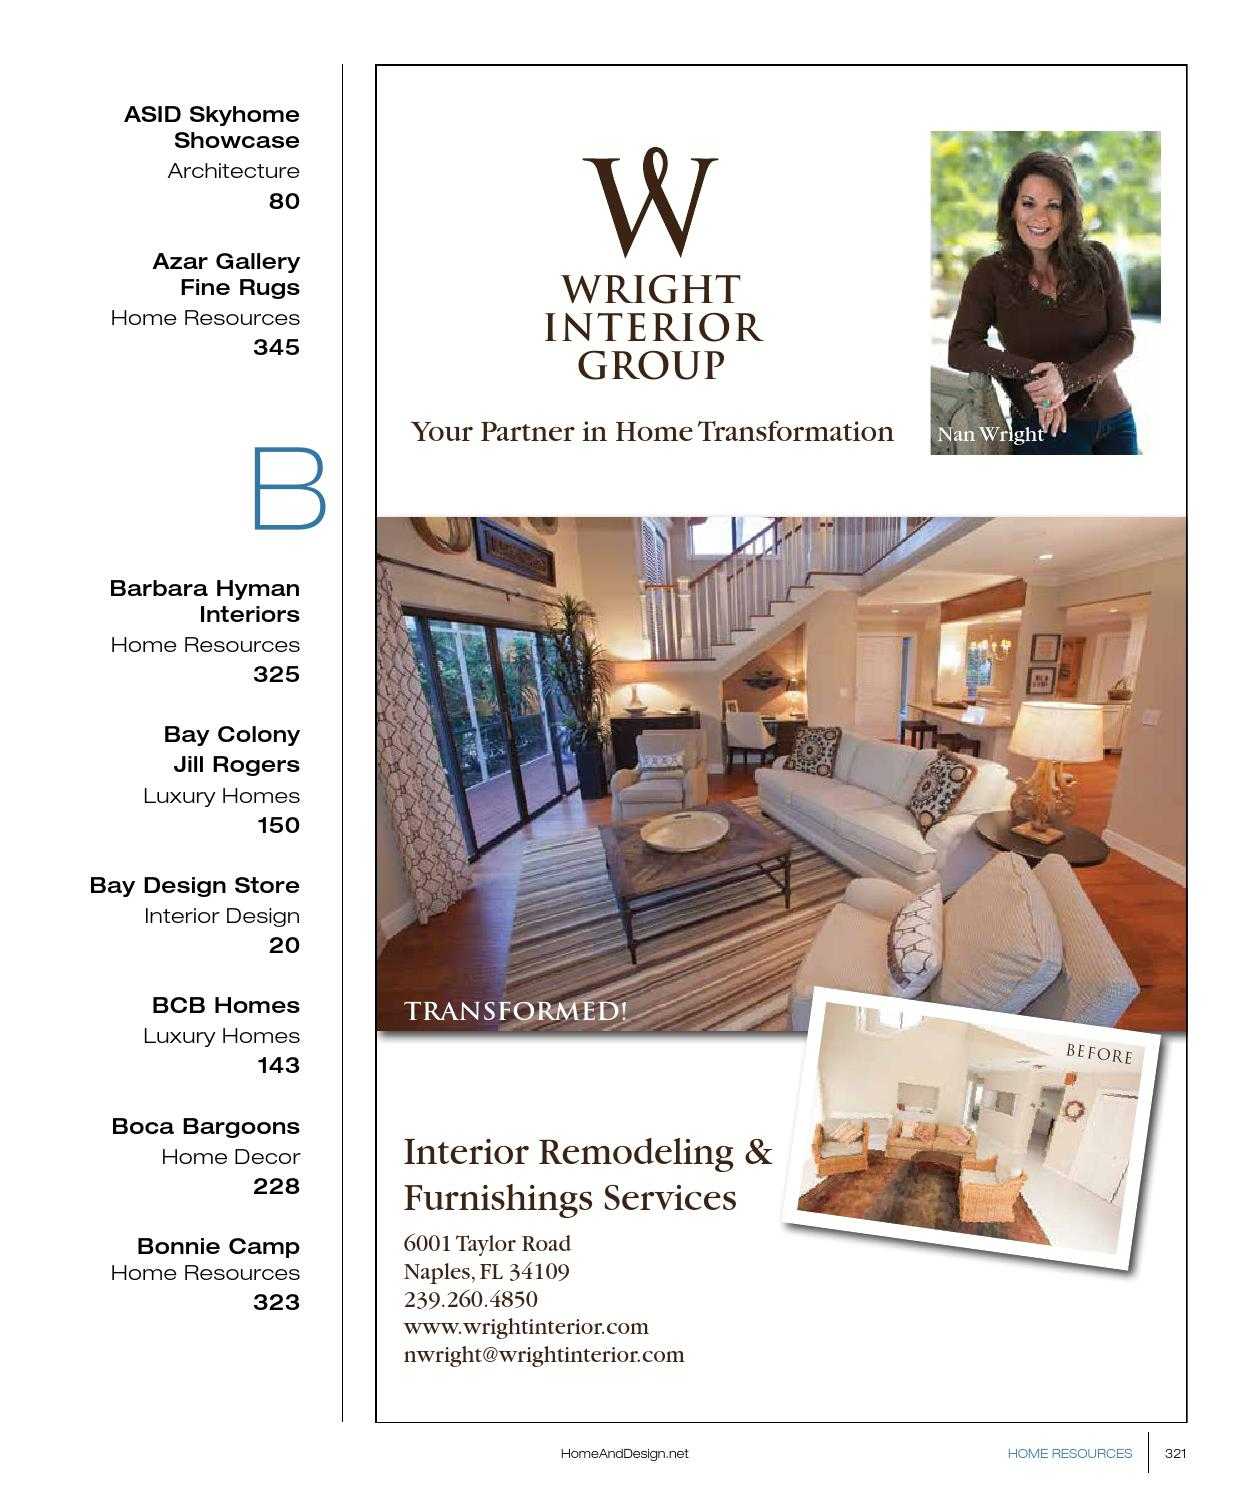 Home Design Magazine Annual Resource Guide 2013 By Anthony Spano